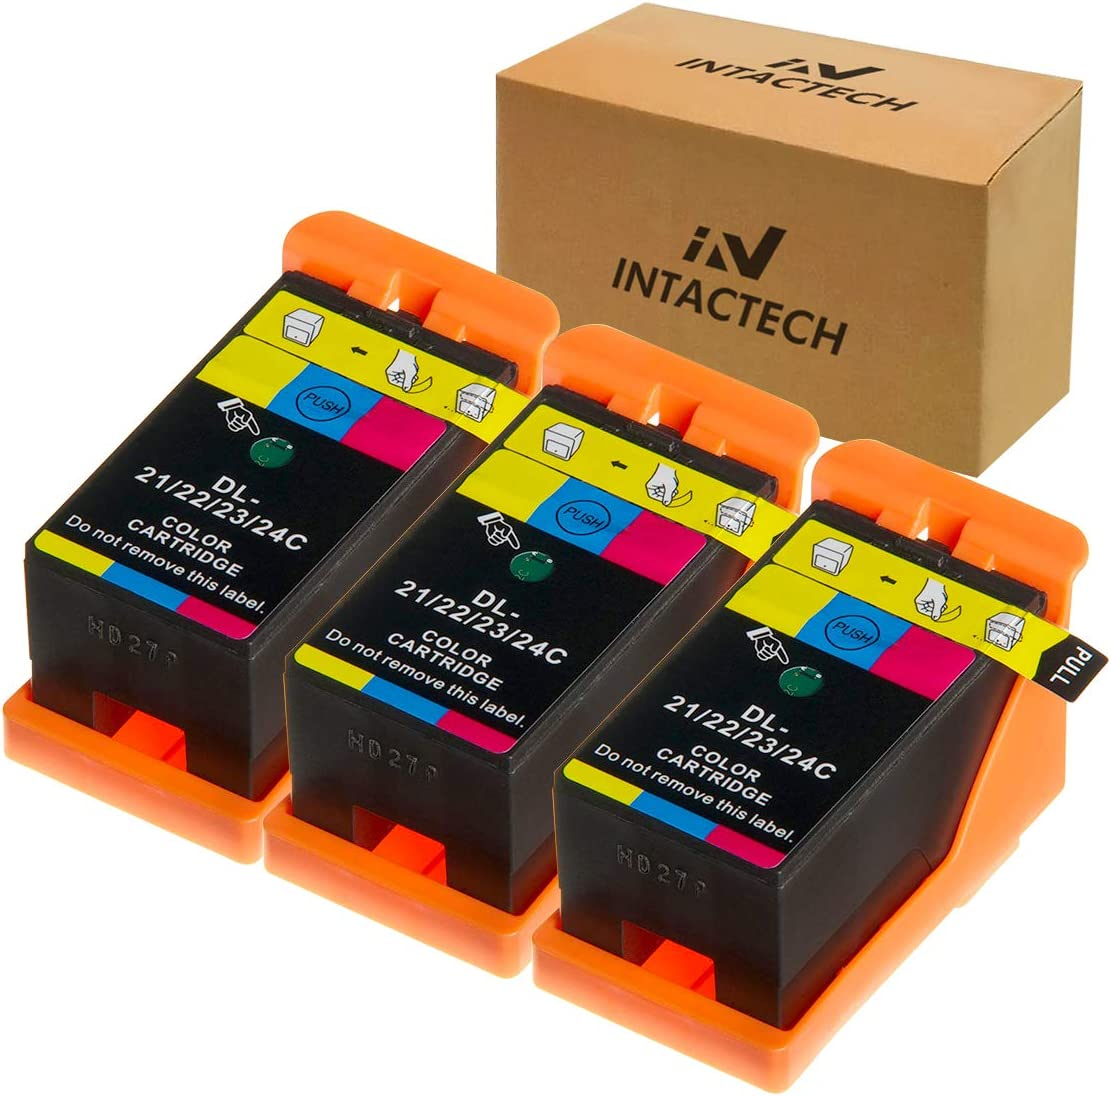 Intactech 3 Color Pack Replacement for Dell V515w, V715w, V313w Ink Cartridges Compatible with Dell Series 21 22 23 24 Work for Dell V313, V313w, V515w, V715w, P513w, P713w Printer